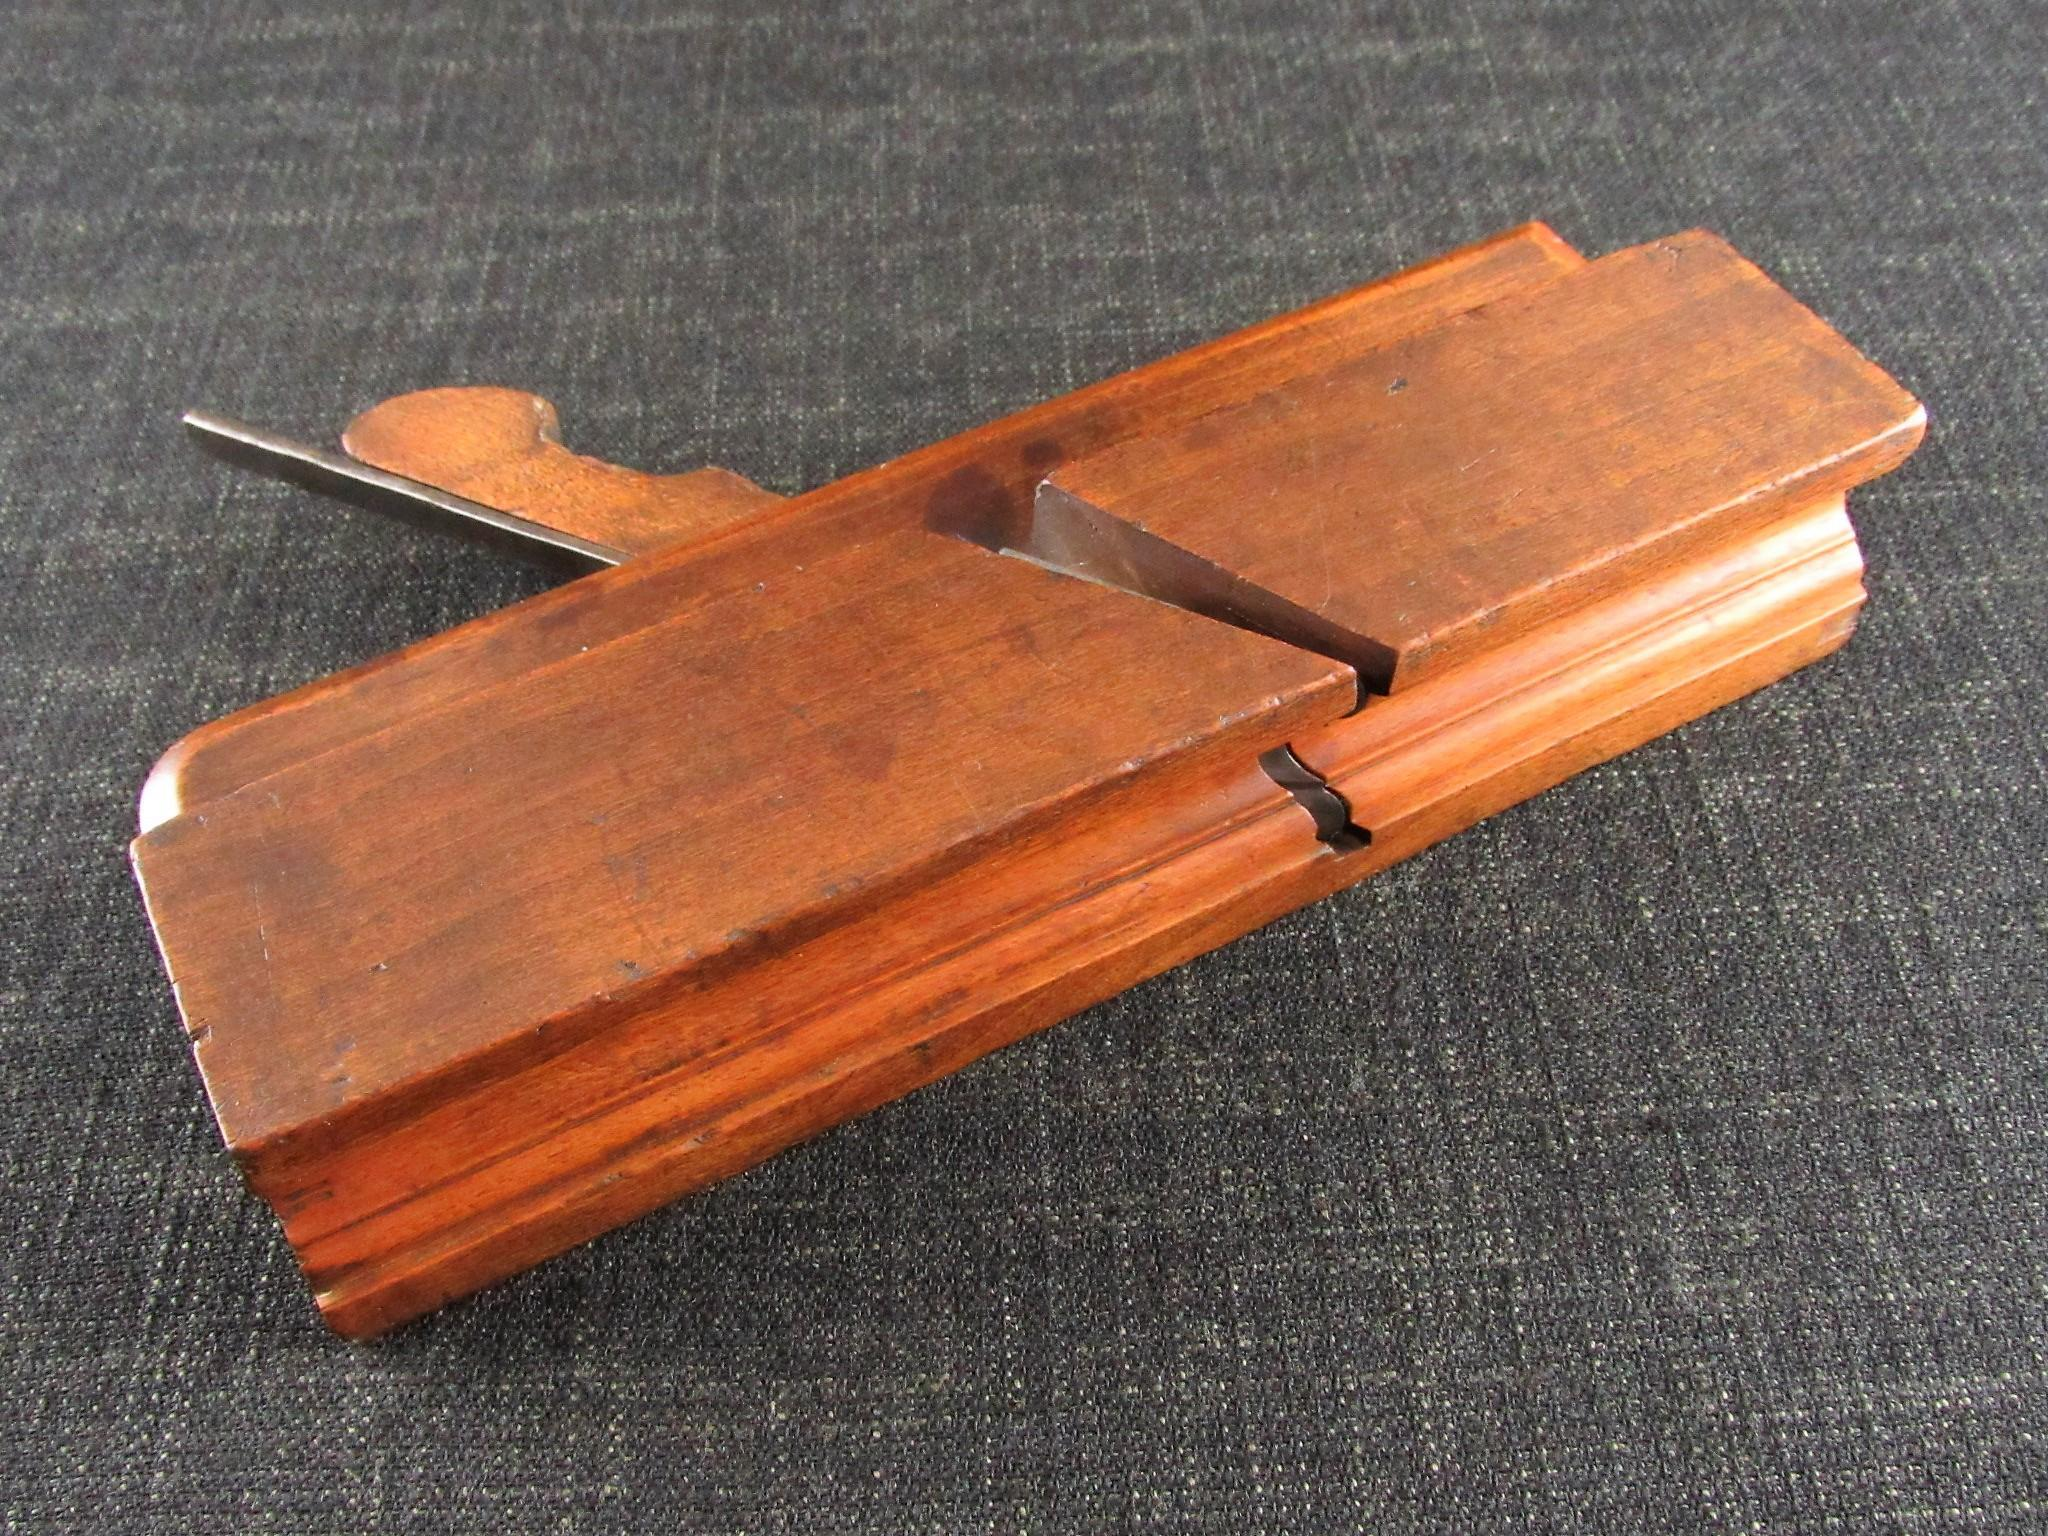 A Rare Complex Profile Moulding Plane by BUCK - Astragal & Hollow Single Iron Sash Plane